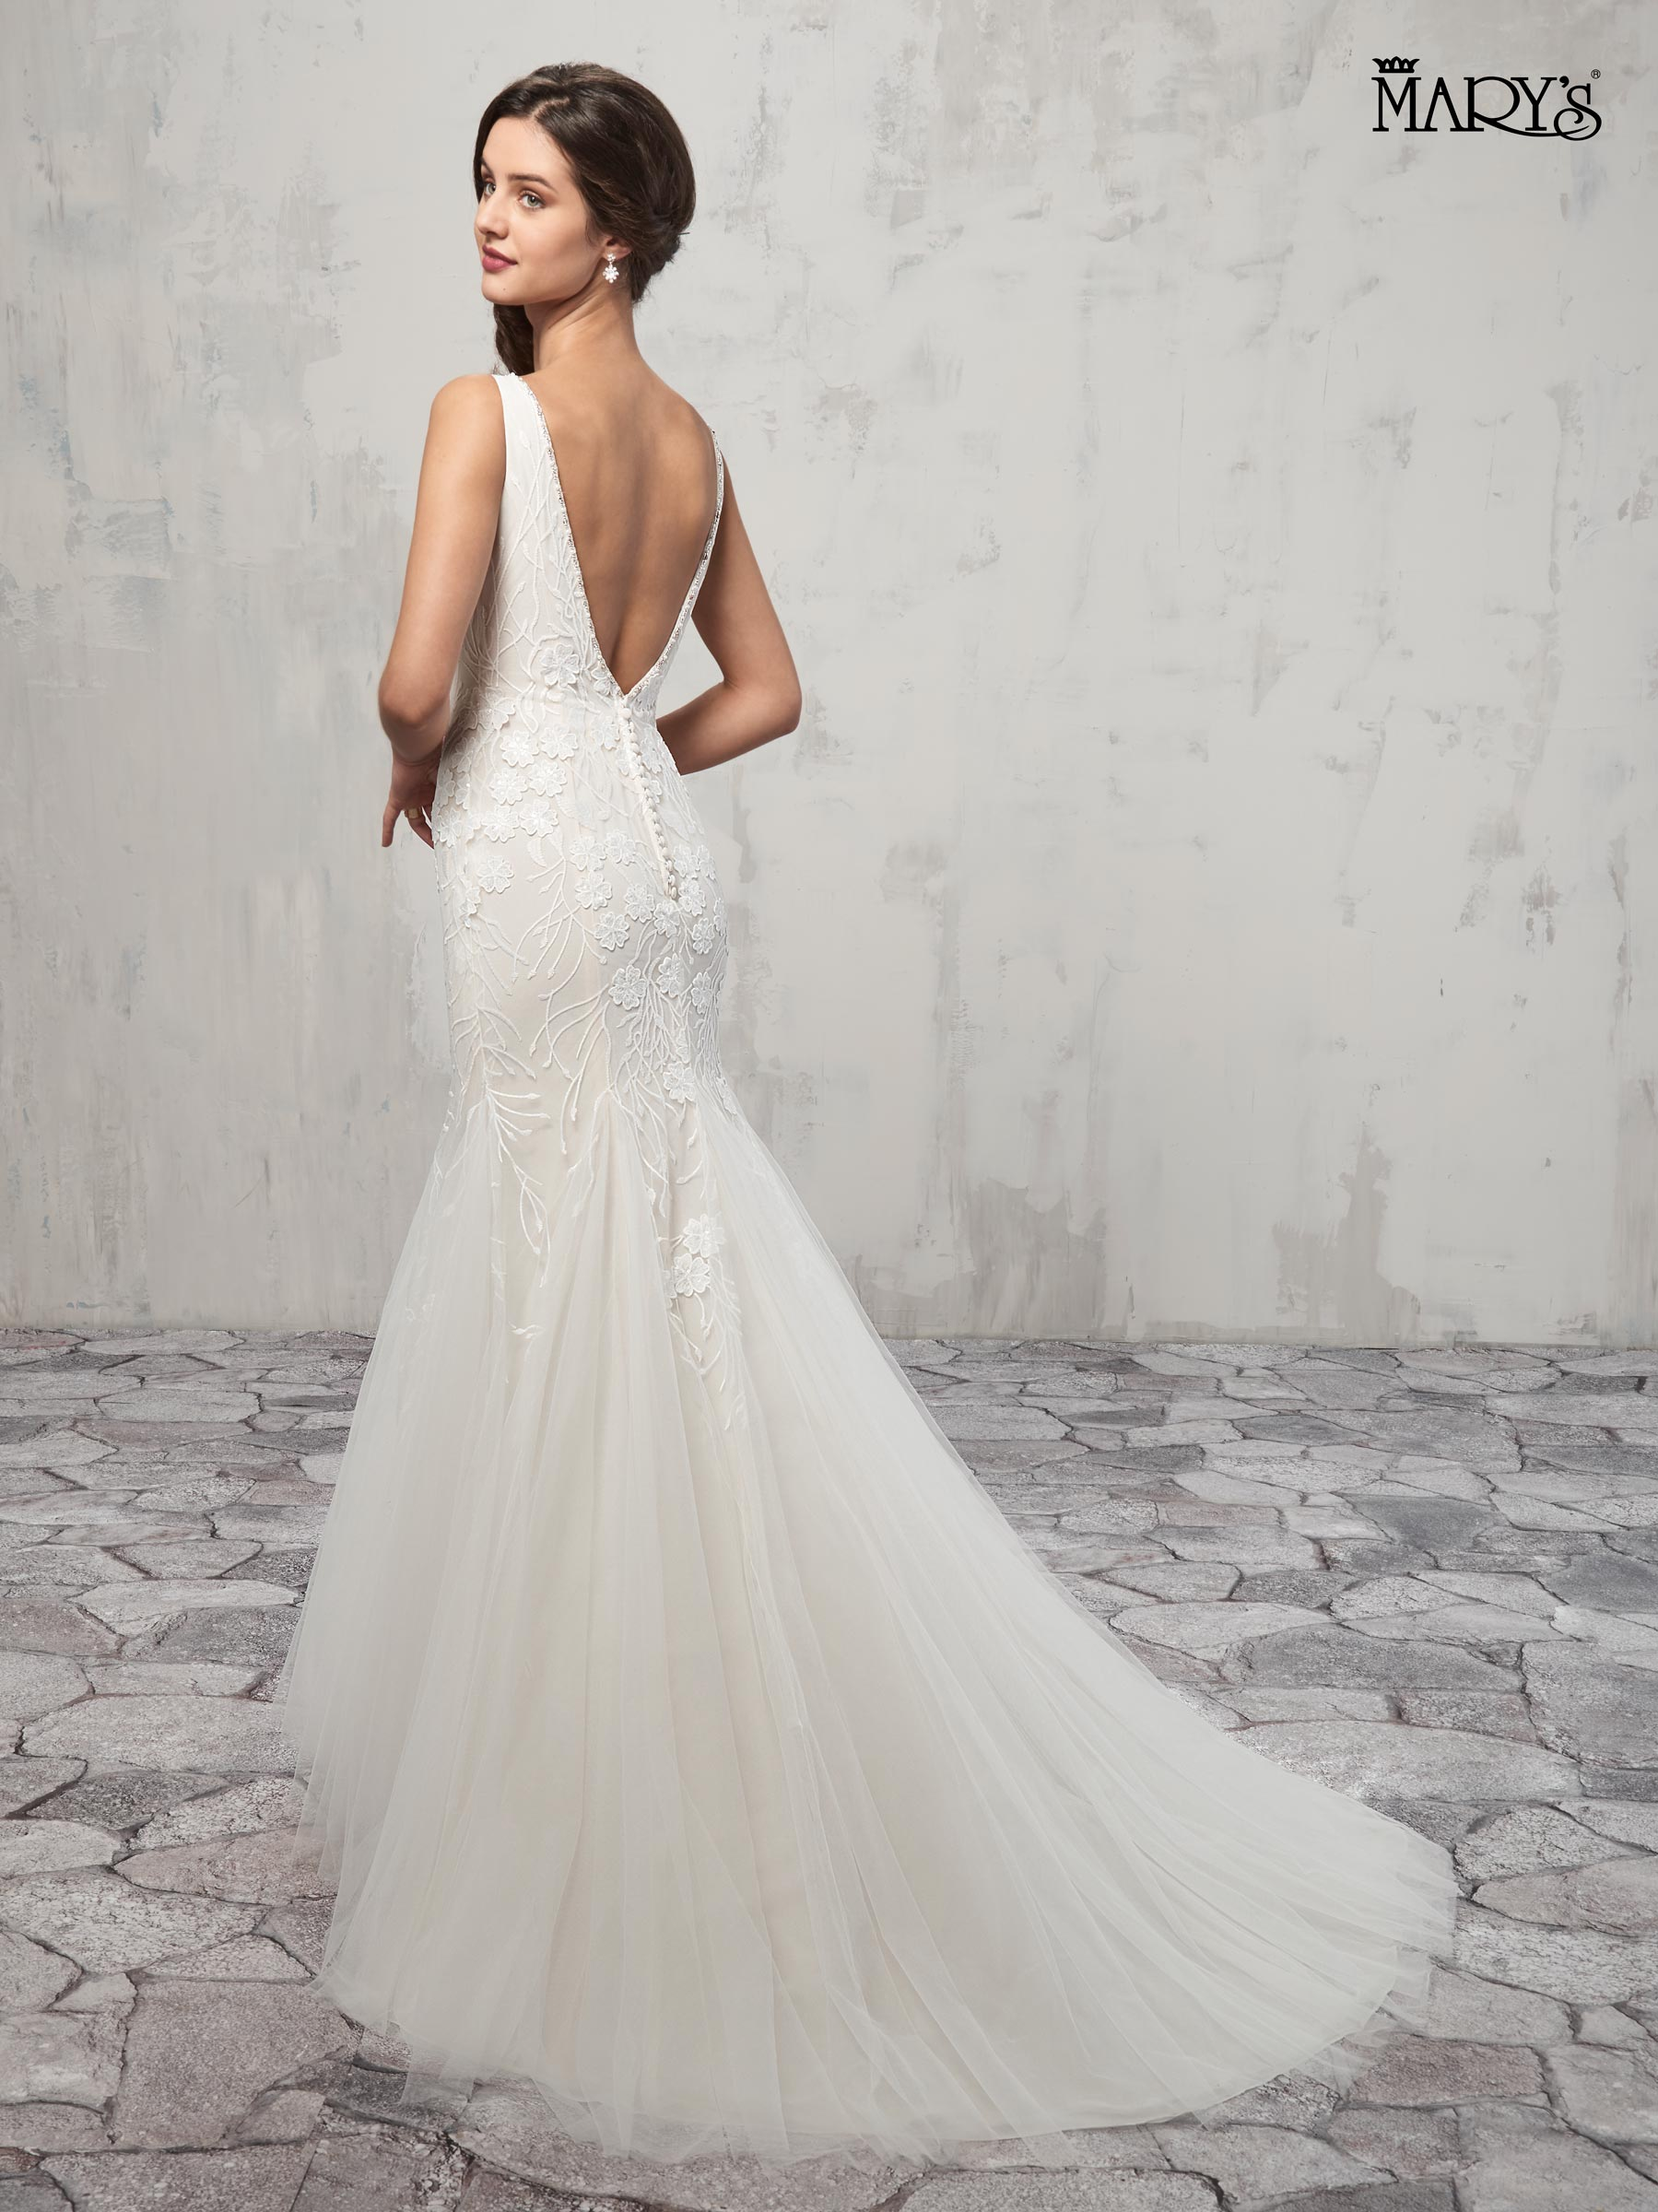 Bridal Wedding Dresses | Mary's | Style - MB3019